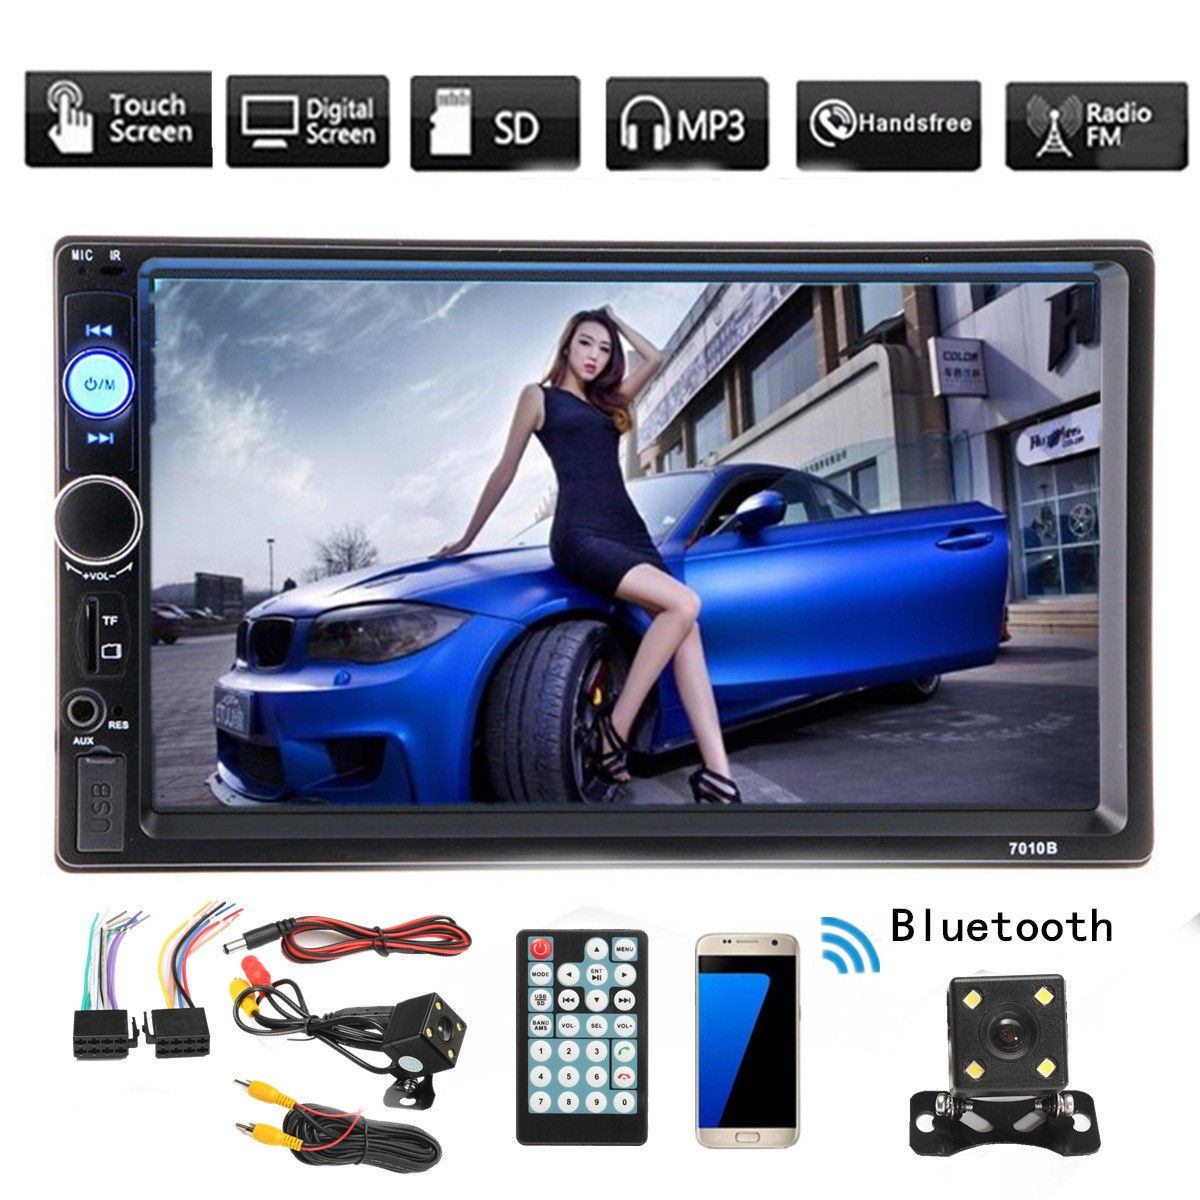 7563TM 6.6 Inch HD Car DVD Player TFT DVD Player Vehicle Head Unit Stereo MP3 Player Double 2 DIN Touch FM Radio